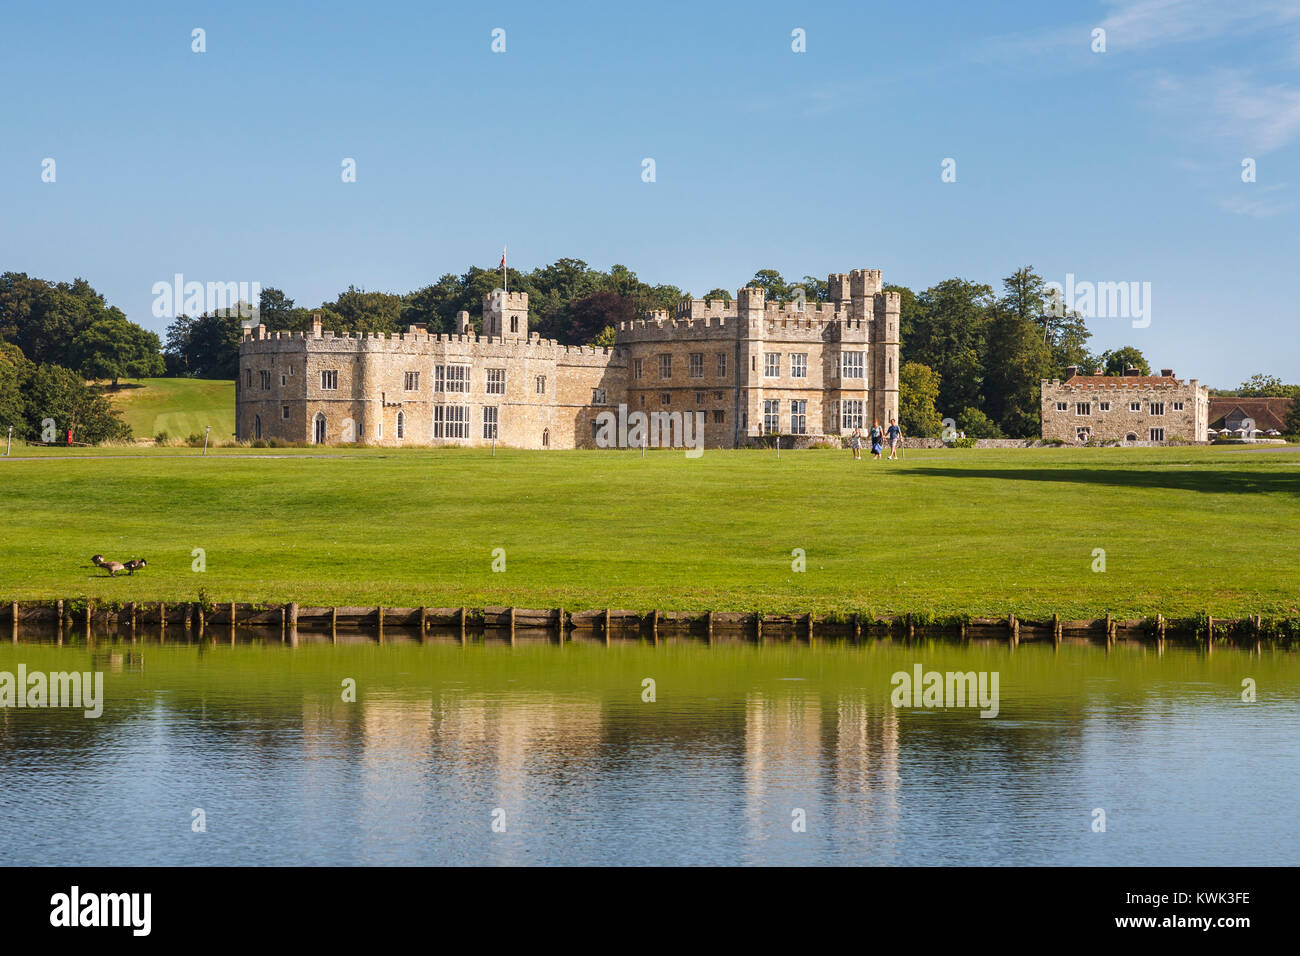 View of the exterior of Leeds Castle, near Maidstone, Kent, southeast England, UK on a sunny summer's day with - Stock Image